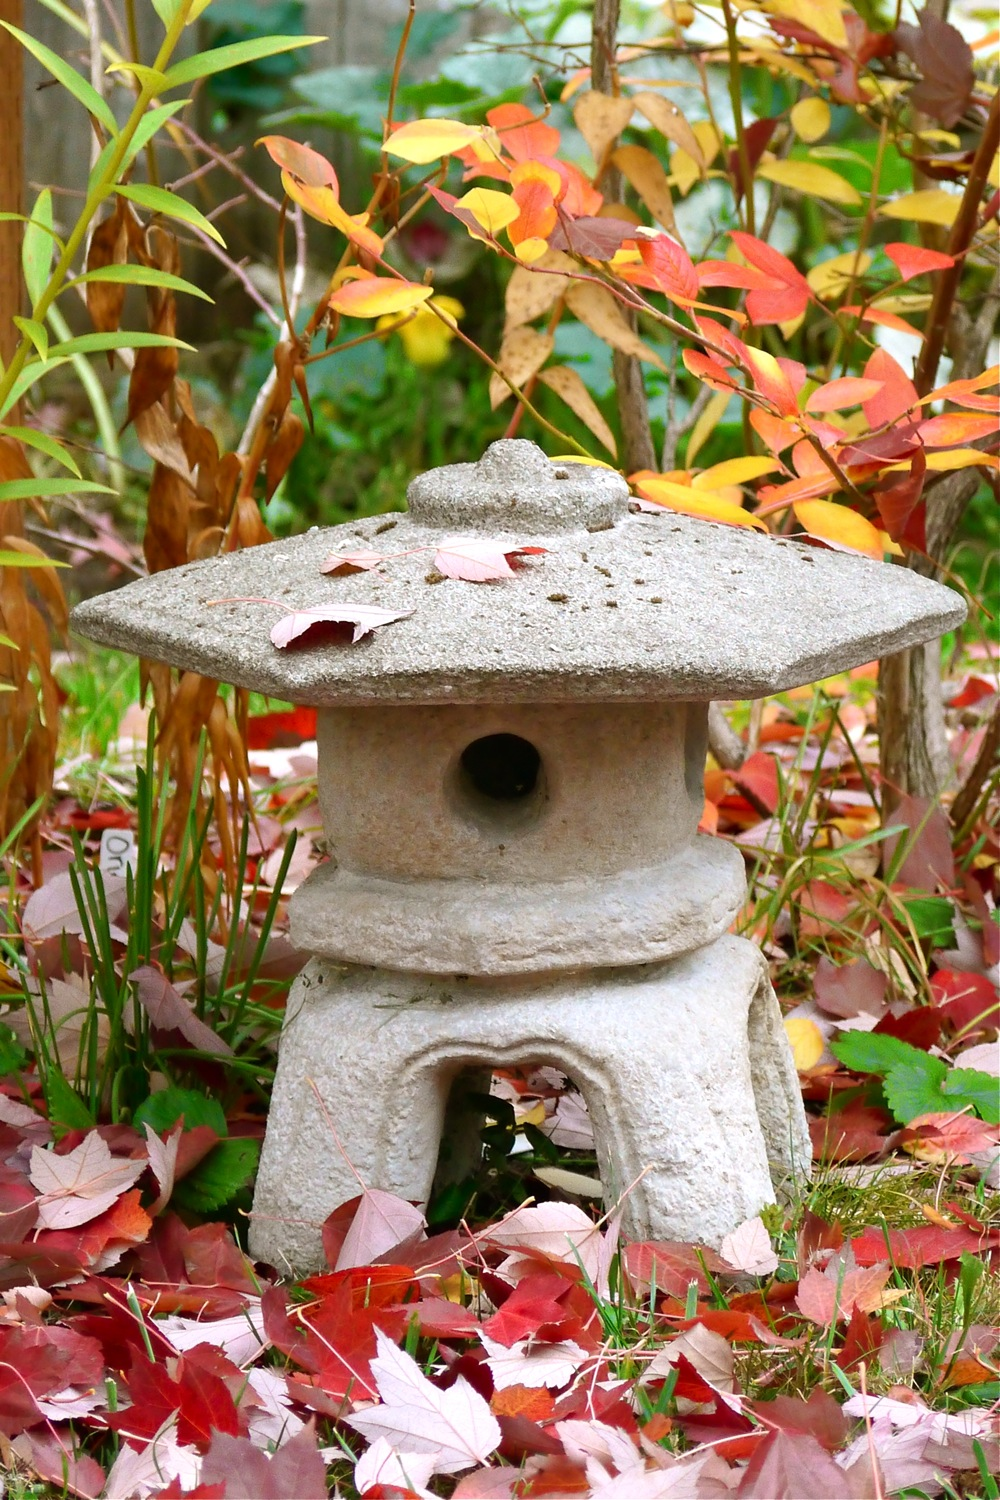 autumn garden, garden photography, Lumix GH2 digital camera, garden photography using a Lumix GH2 digital camera, Lumix GH2 DSLR, Lumix digital camera, autumn garden photography using a Lumix GH2 digital camera, childhood memories, my ambition is to be a photographer, passion for photography, childhood dreams, photographing my garden, my garden in autumn, autumn garden photography, hydrangeas in autumn, autumn hydrangeas, autumn dahlia, dahlia in autumn, Japanese lantern in autumn, golden autumn leaf, red autumn maple leaves, autumn echinacea, autumn maple leaves, yellow rose in autumn, autumn echinacea thistles, red autumn Japanese maple leaves, purple echinacea in autumn, yellow squash blossom in autumn, backyard sparrow, autumn tea time, teatime in autumn, tea drinking in autumn, Japanese ironstone, Independence Ironstone Japan